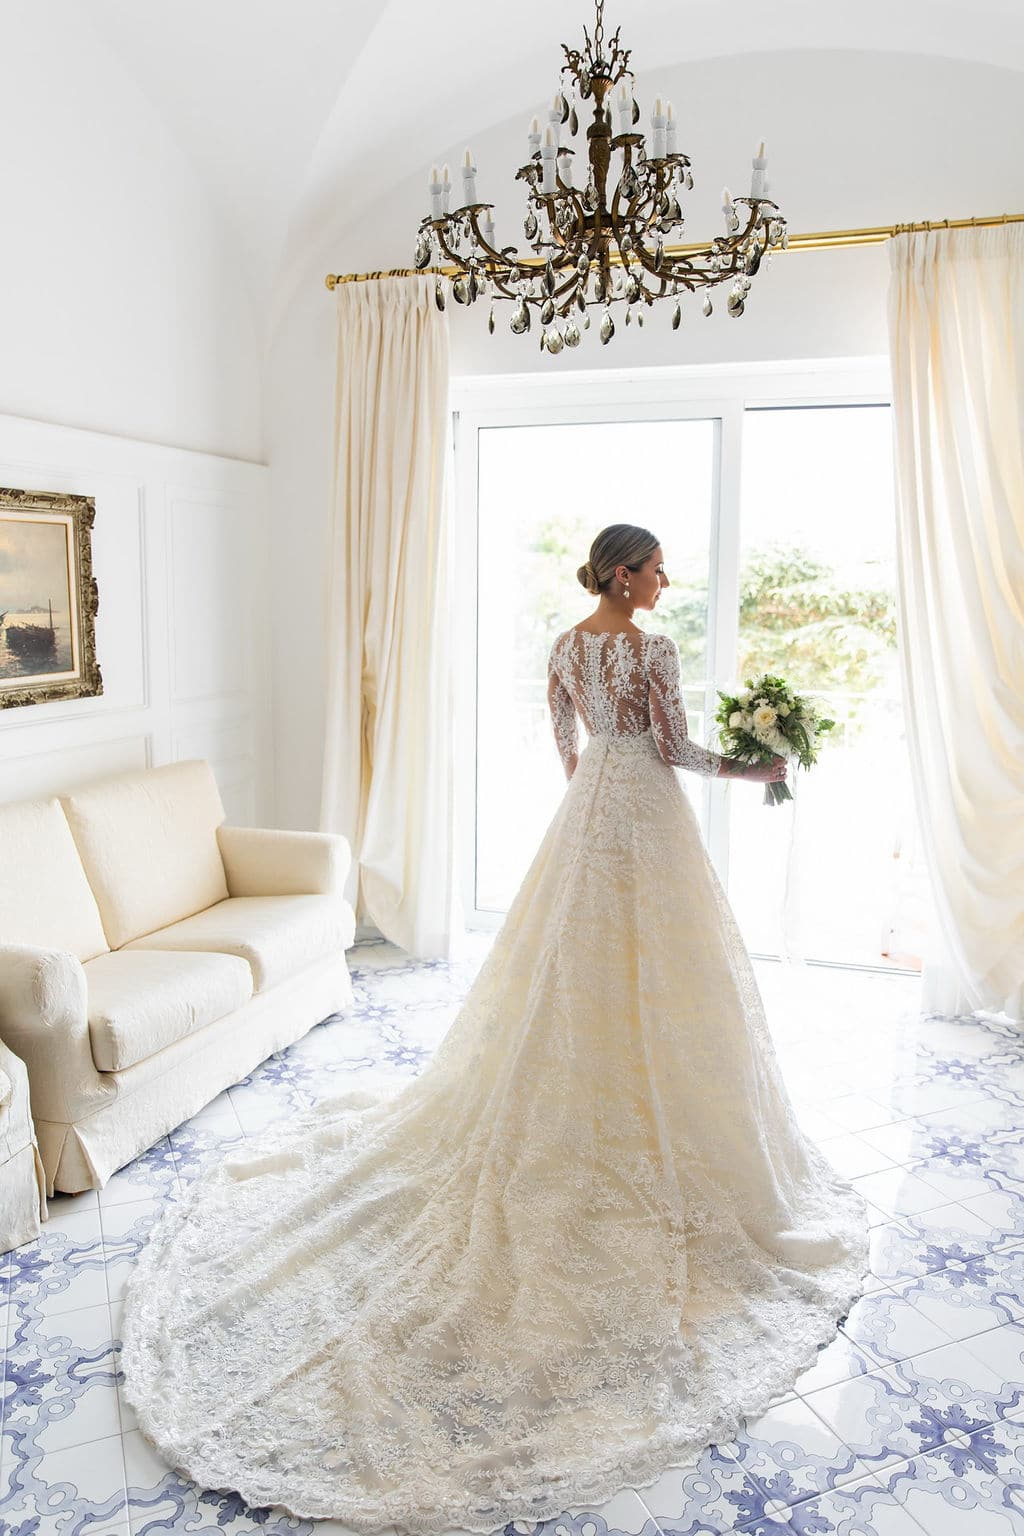 long train and lace sleeves on wedding gown with white floral bouquet